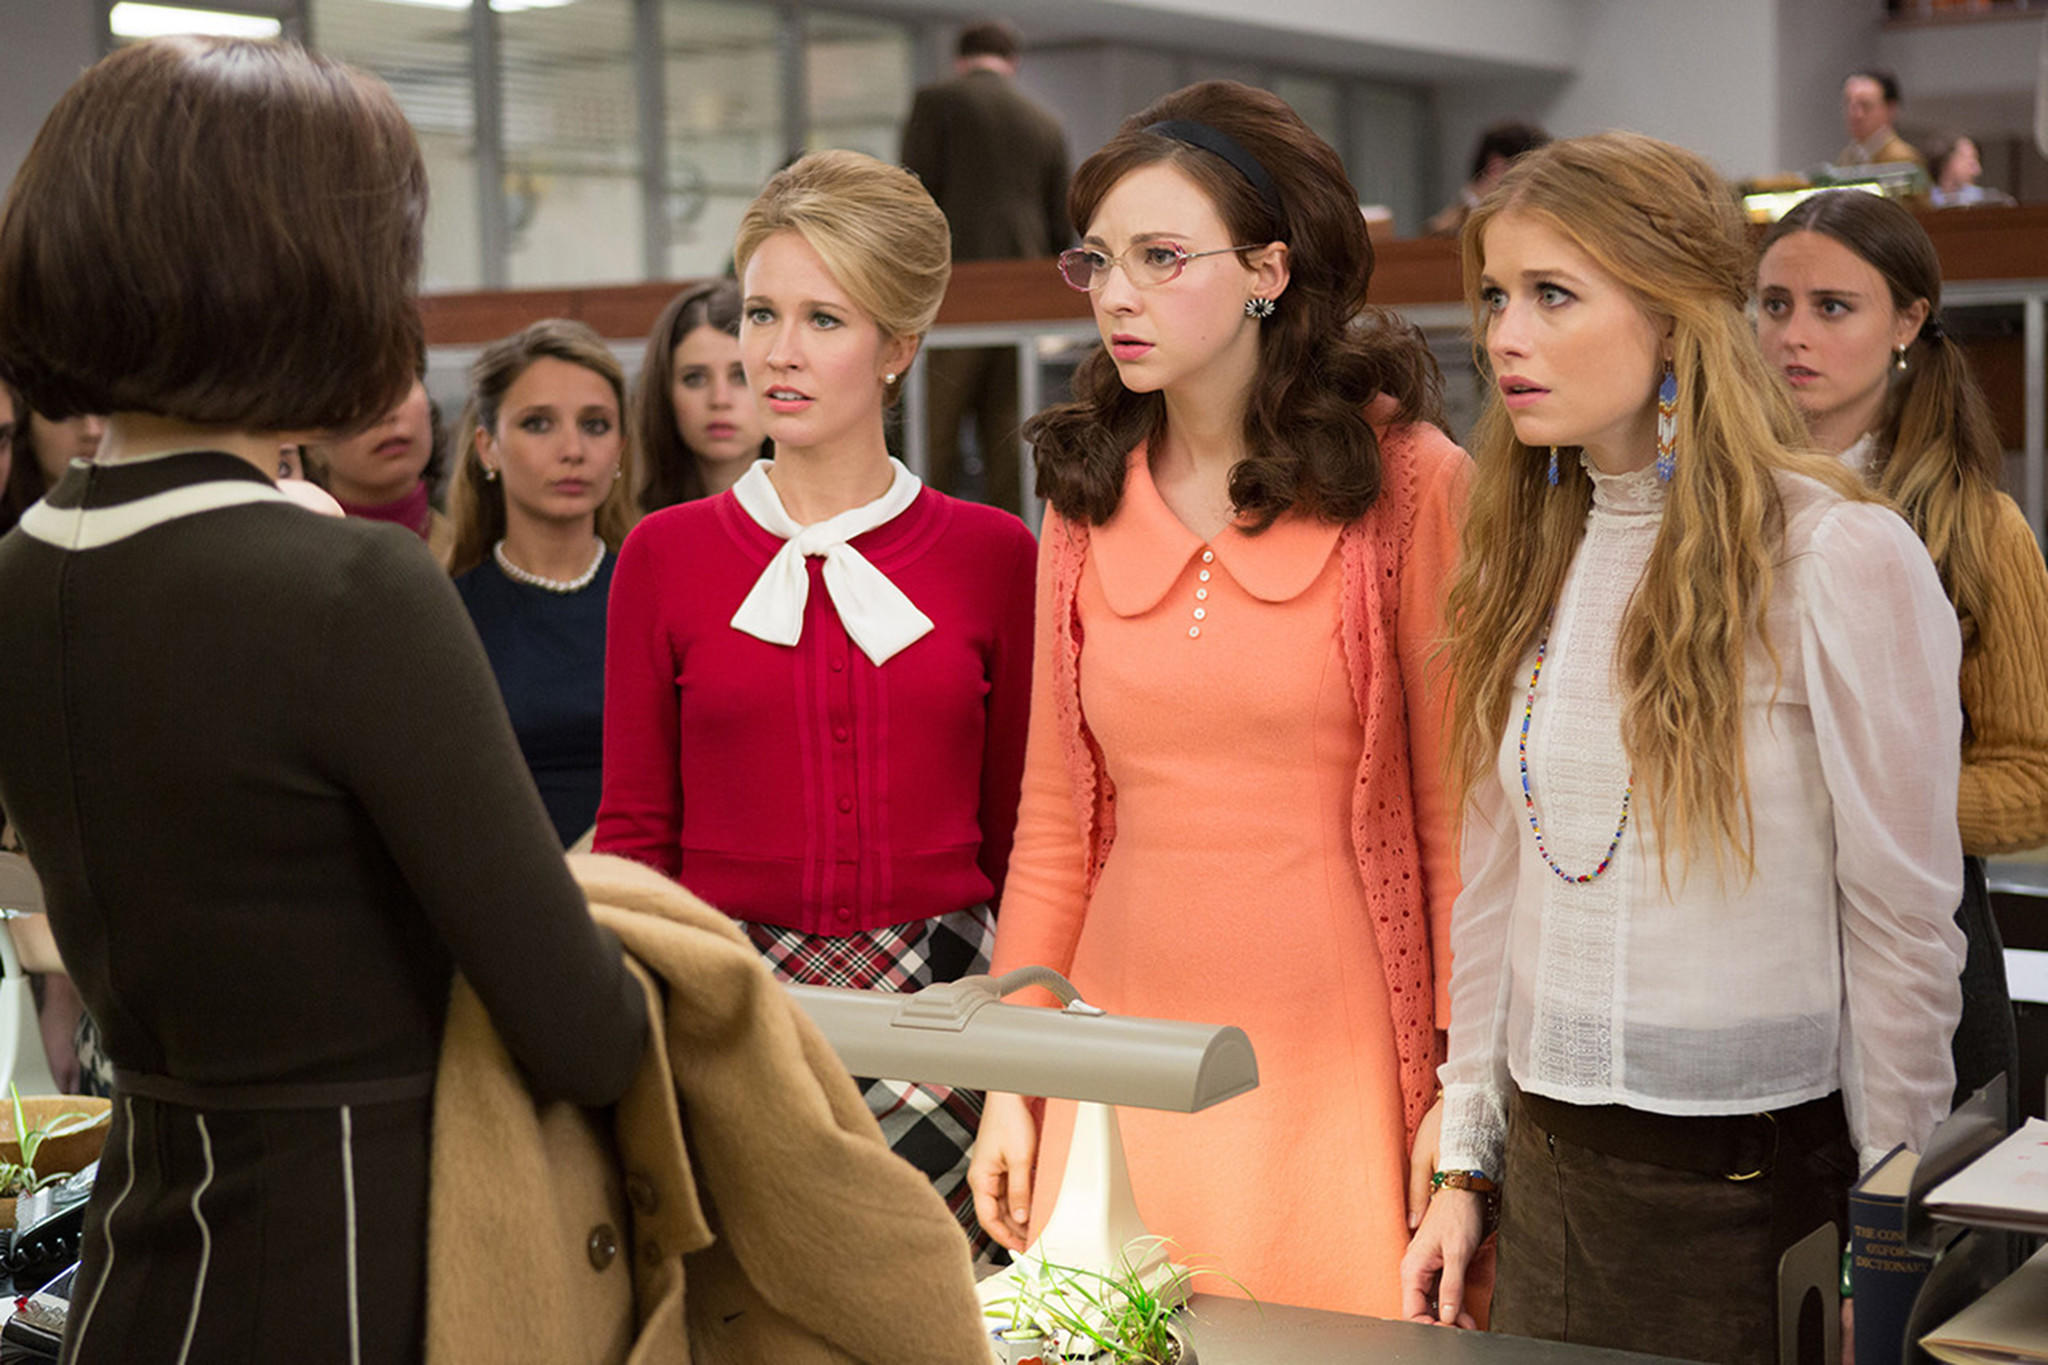 """From left, Anna Camp, Erin Darke and Genevieve Angelson appear in a scene from Amazon Studios' """"Good Girls Revolt."""" (Amazon Studios)"""